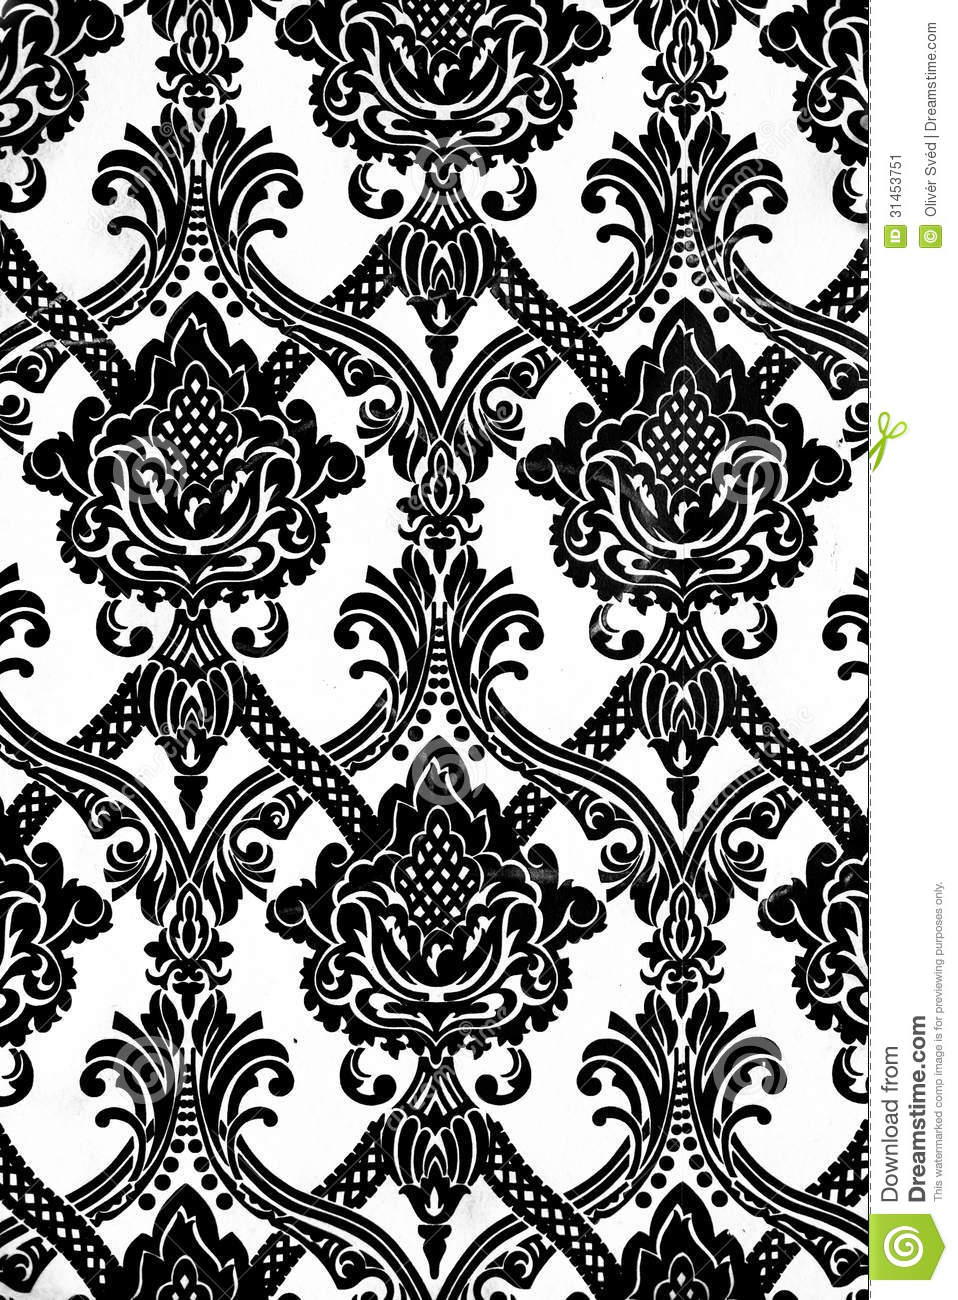 Wallpaper Pattern Vintage Black And White Amazing Wallpapers 958x1300